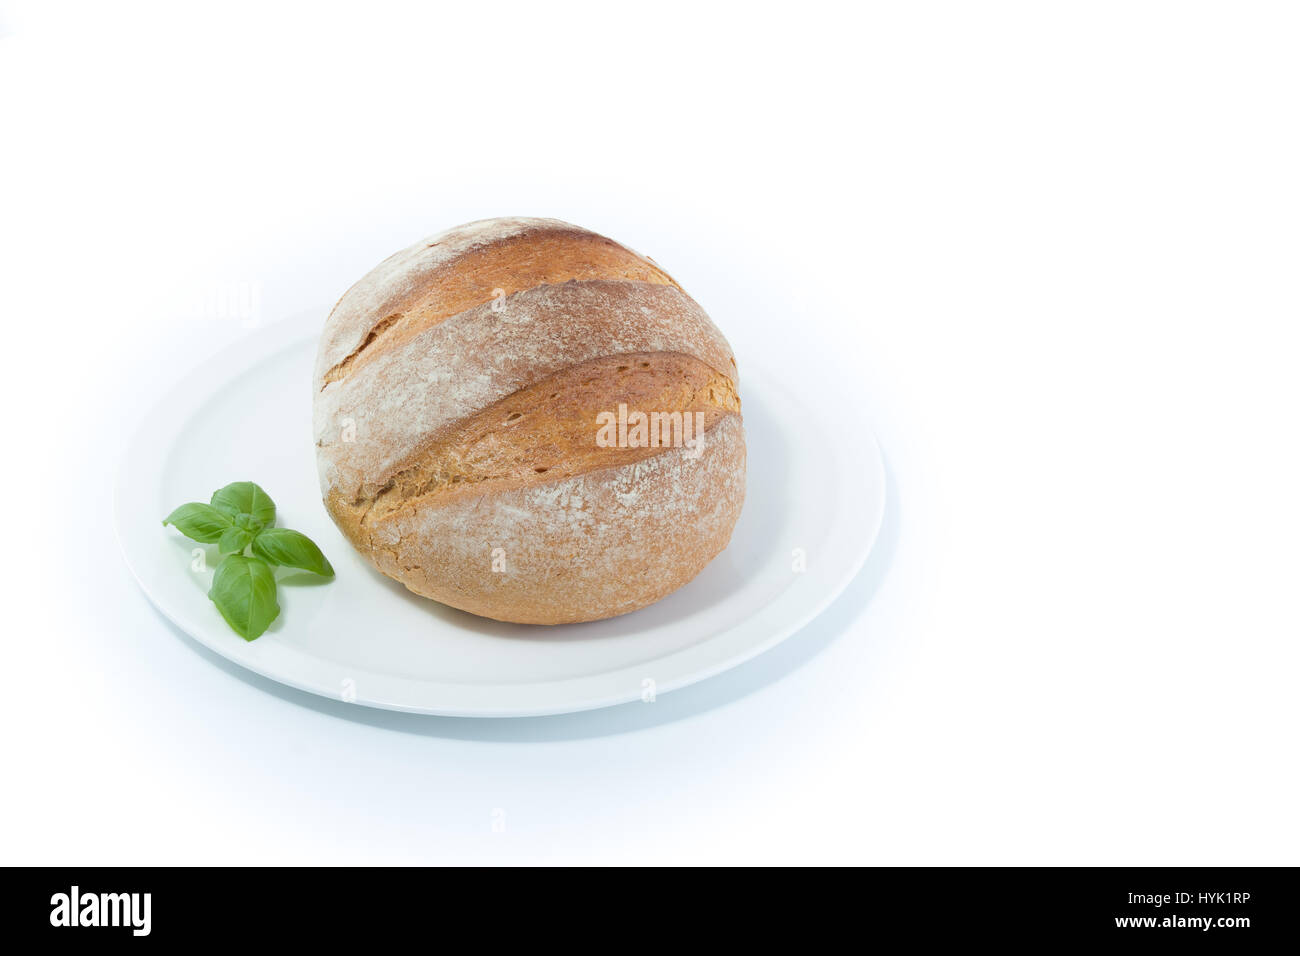 Full rustic loaf of bread with basil leaves on a white dish isolated on white background - Stock Image